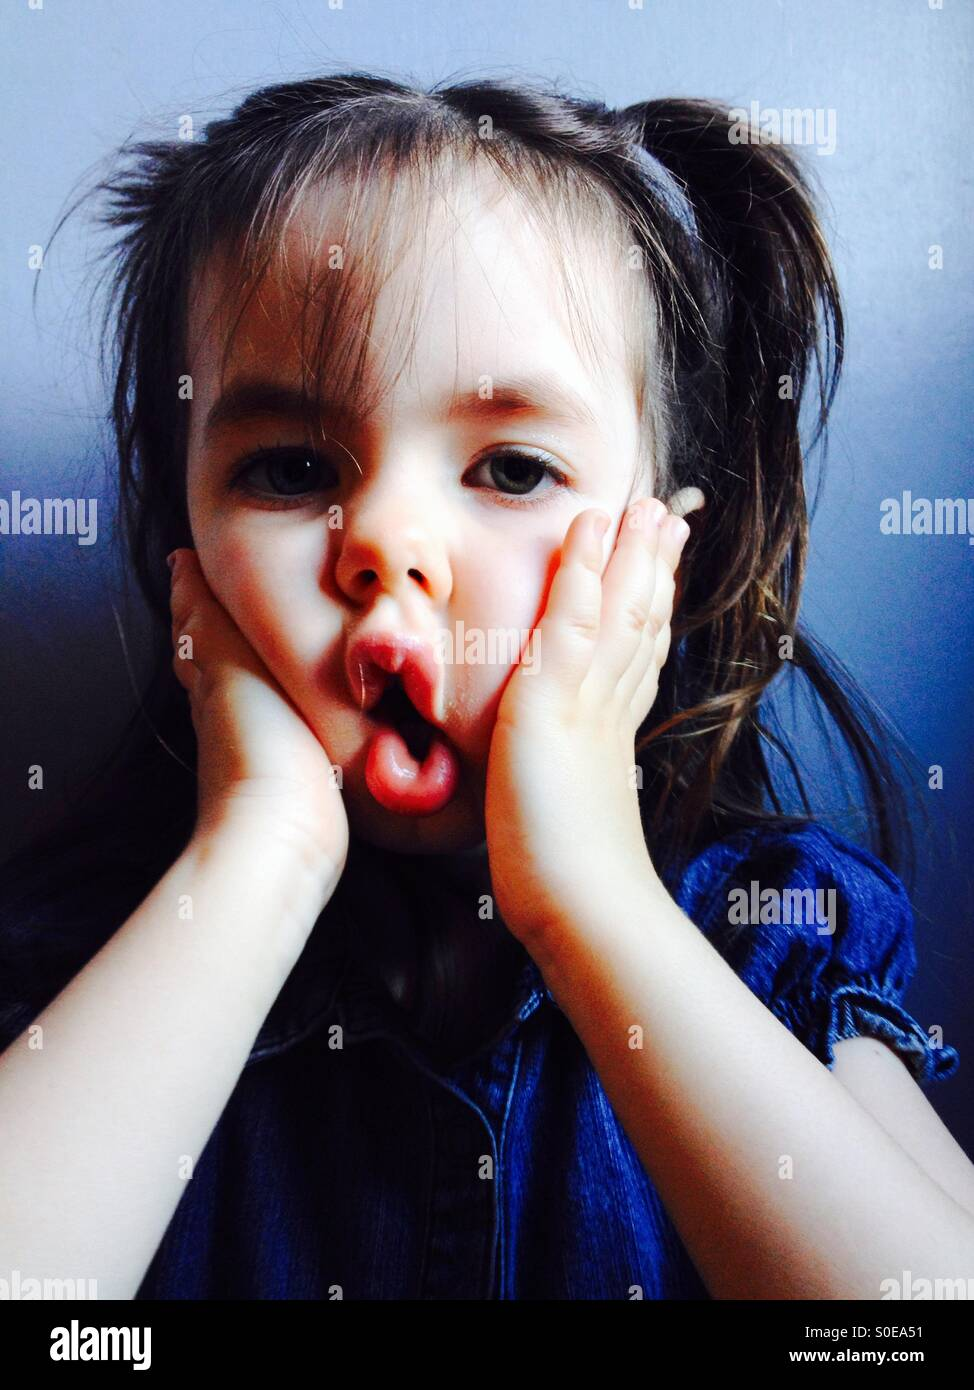 3-year old girl making funny face - Stock Image